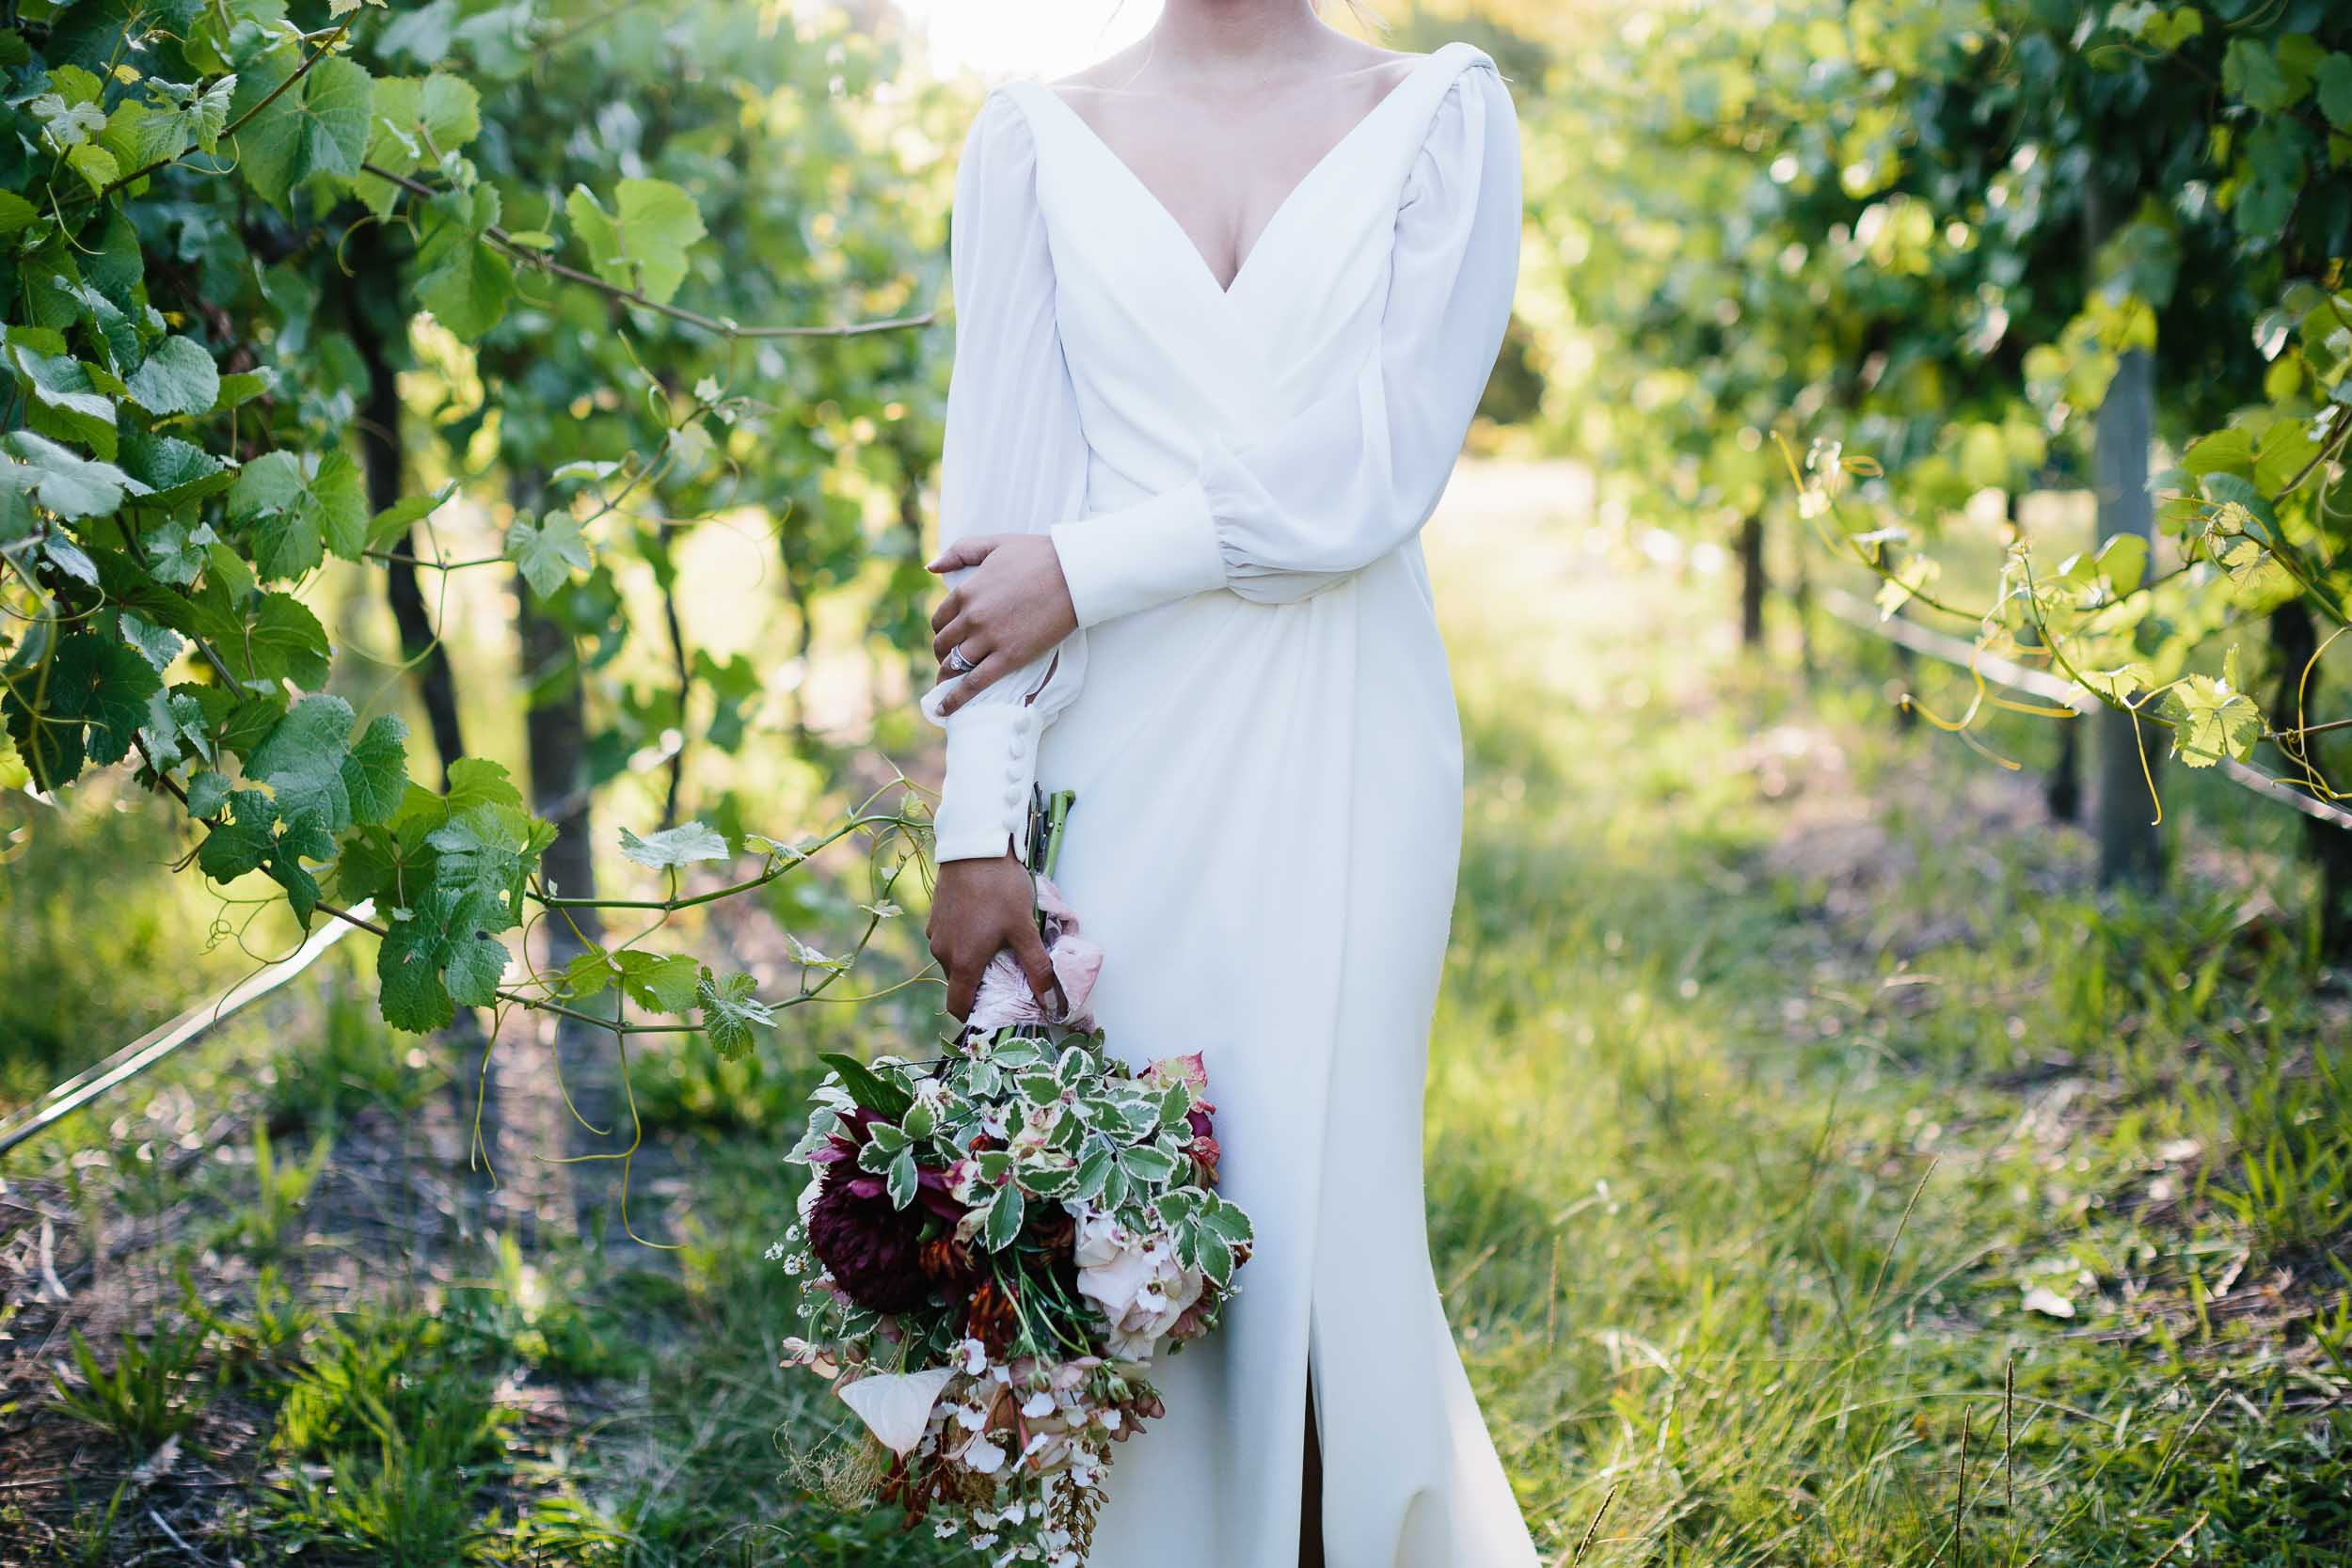 Kas-Richards-Wedding-Ediorial-Photographer-Mornington-Peninsula-Winery-Wedding-Karen-Willis-Holmes-Gown-Pop-up-with-Style-Planners-15.jpg